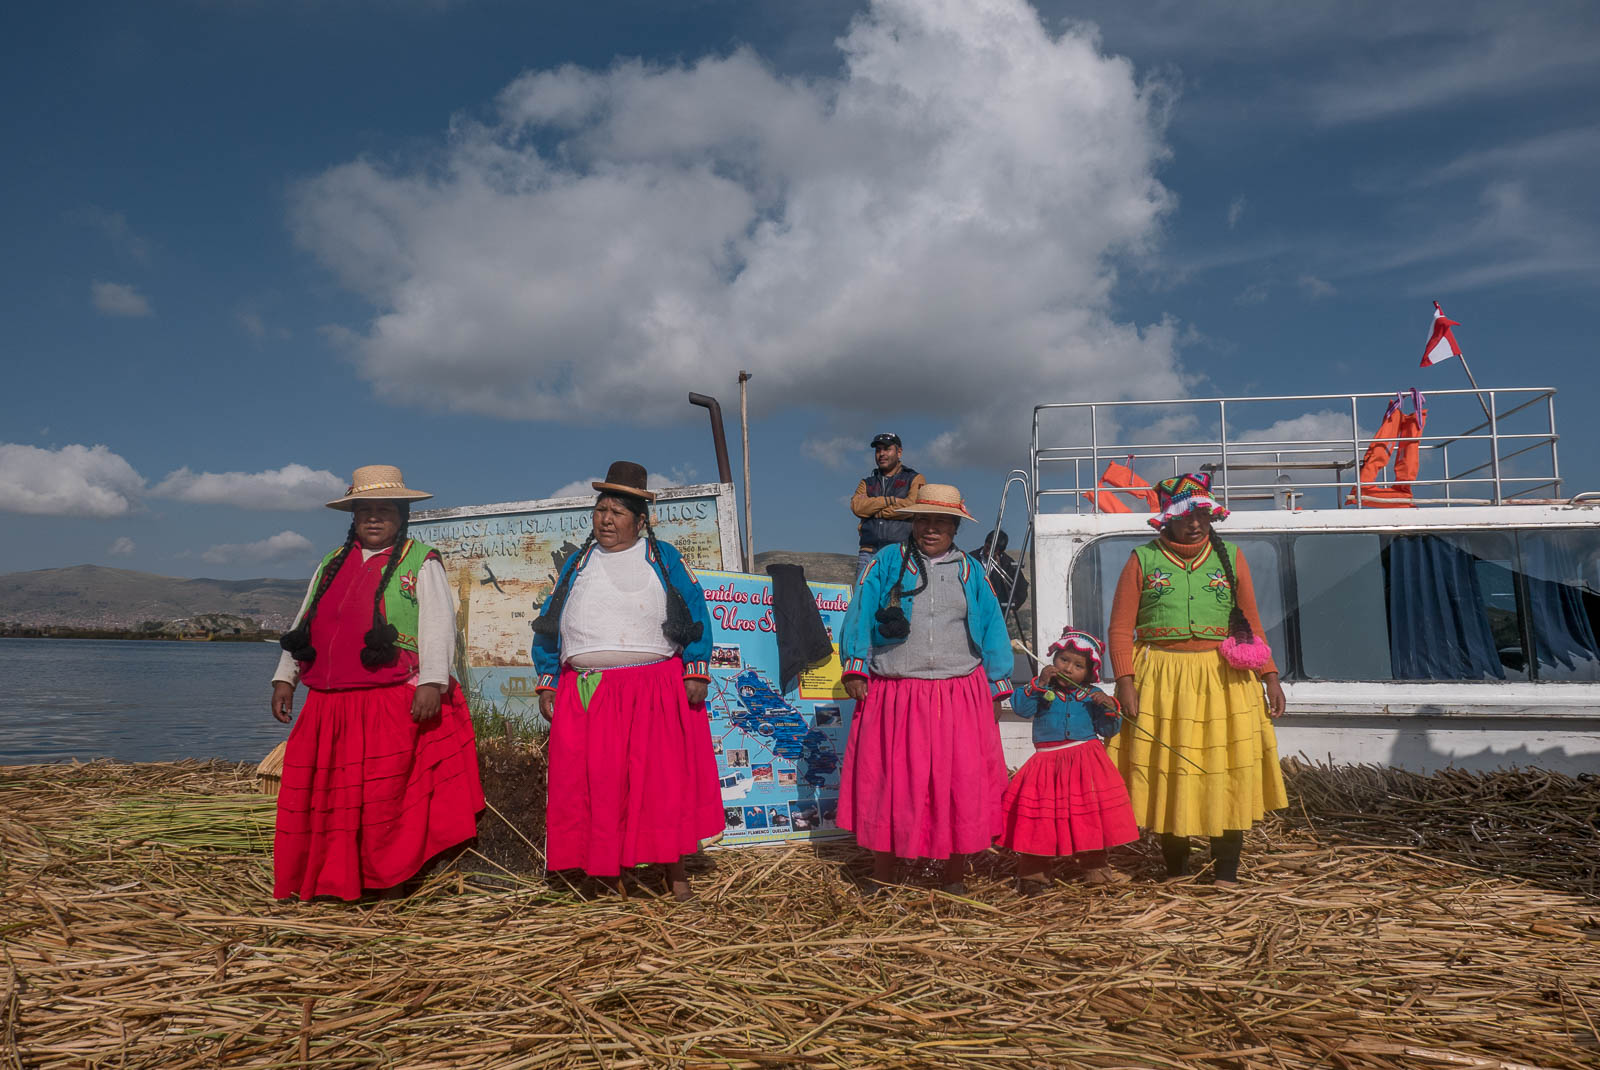 Three brightly coloured women of Uros Island, with a young three-year-old girl, show off their beautiful traditional dress on Uros Island.